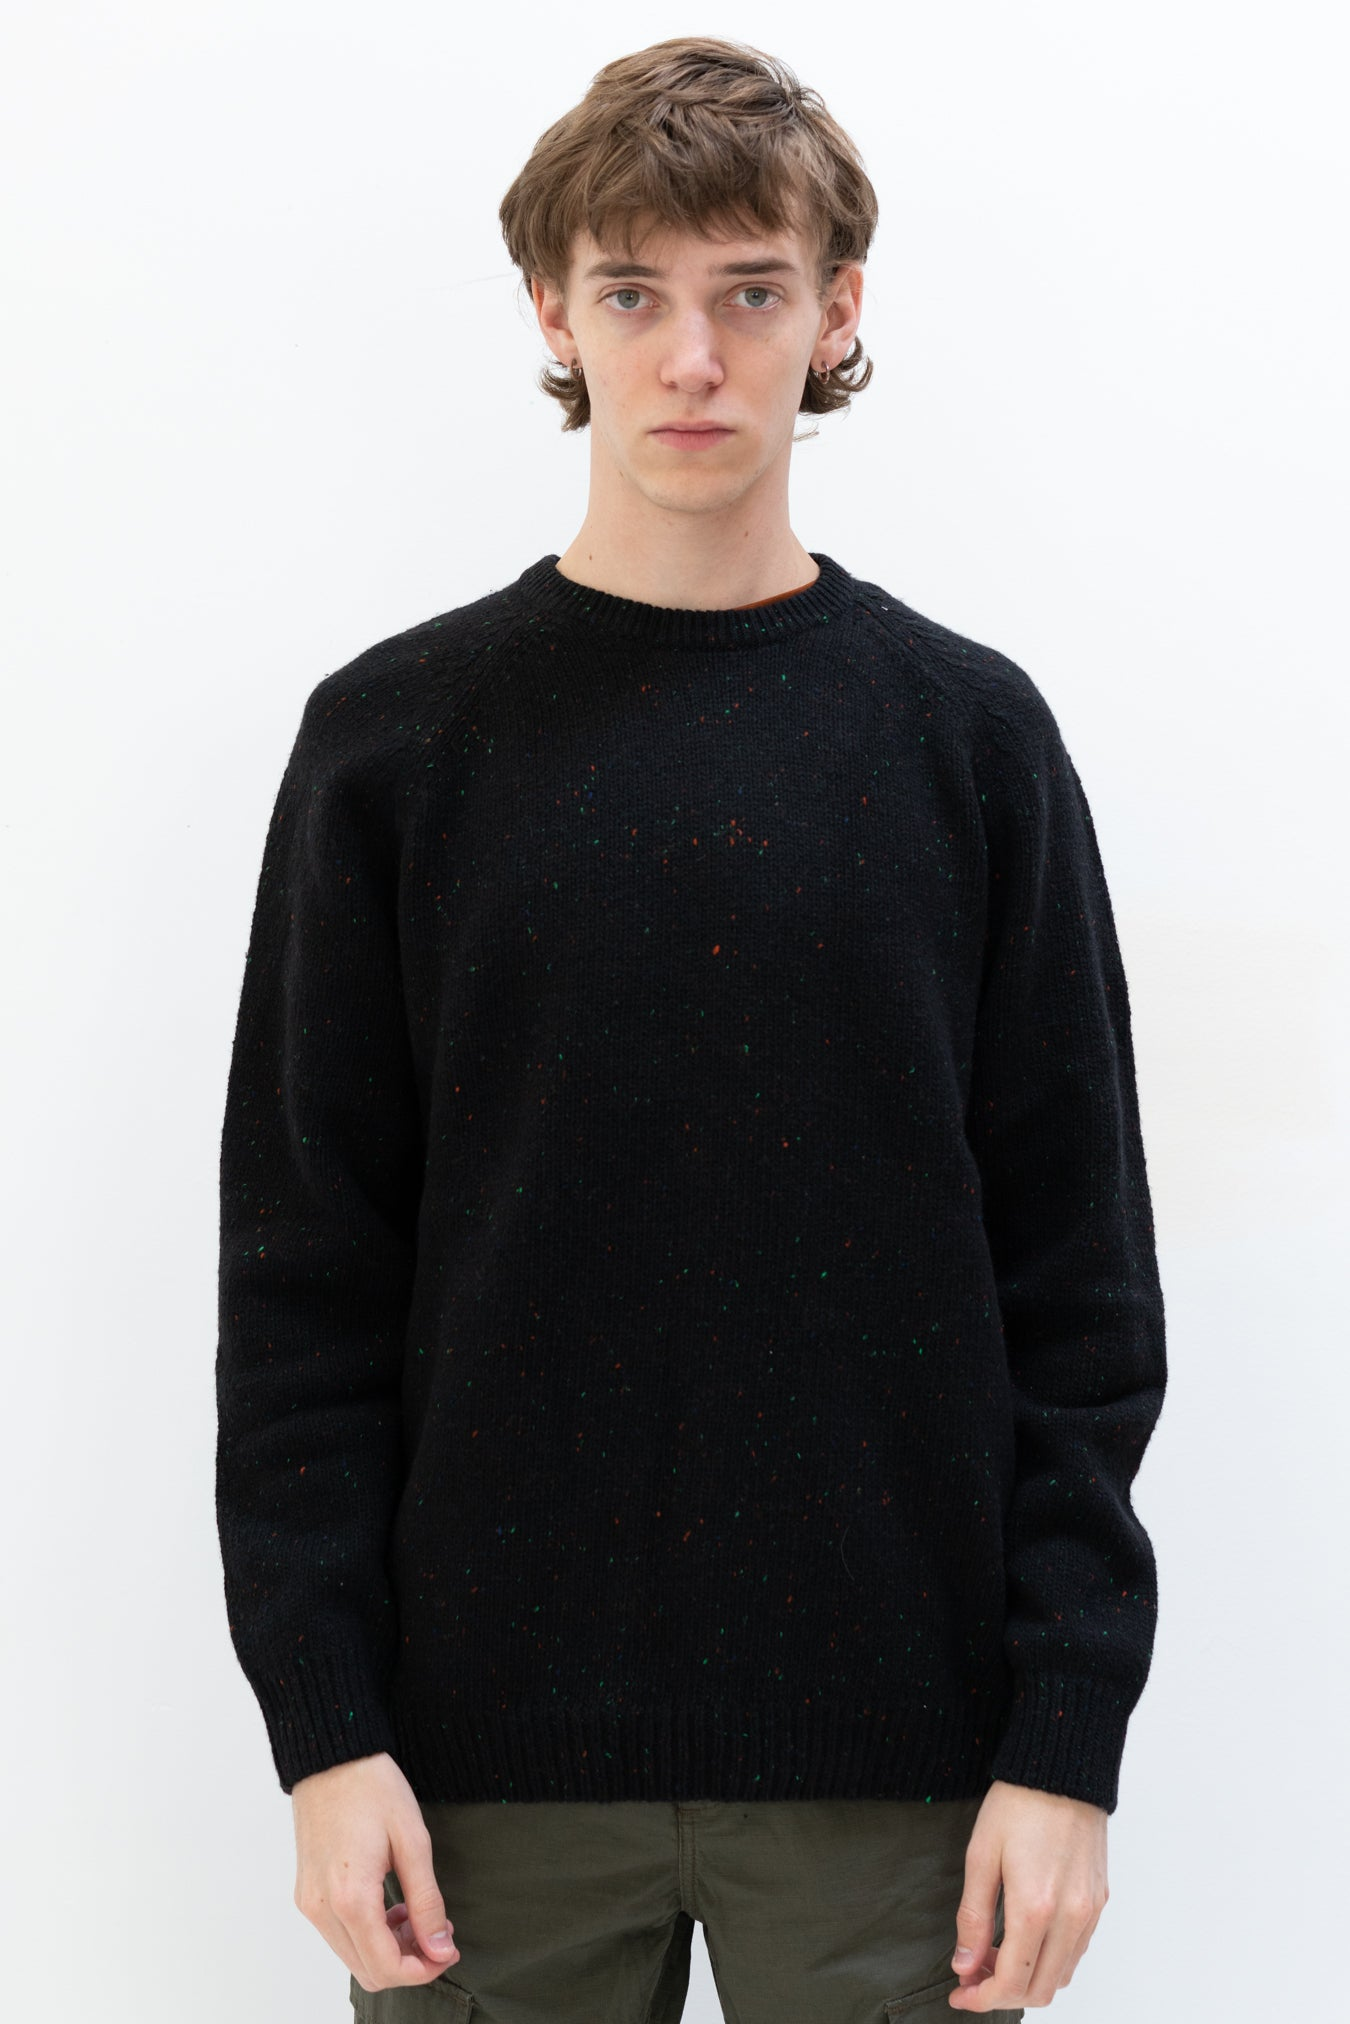 Anglistic Sweater in Black Heather